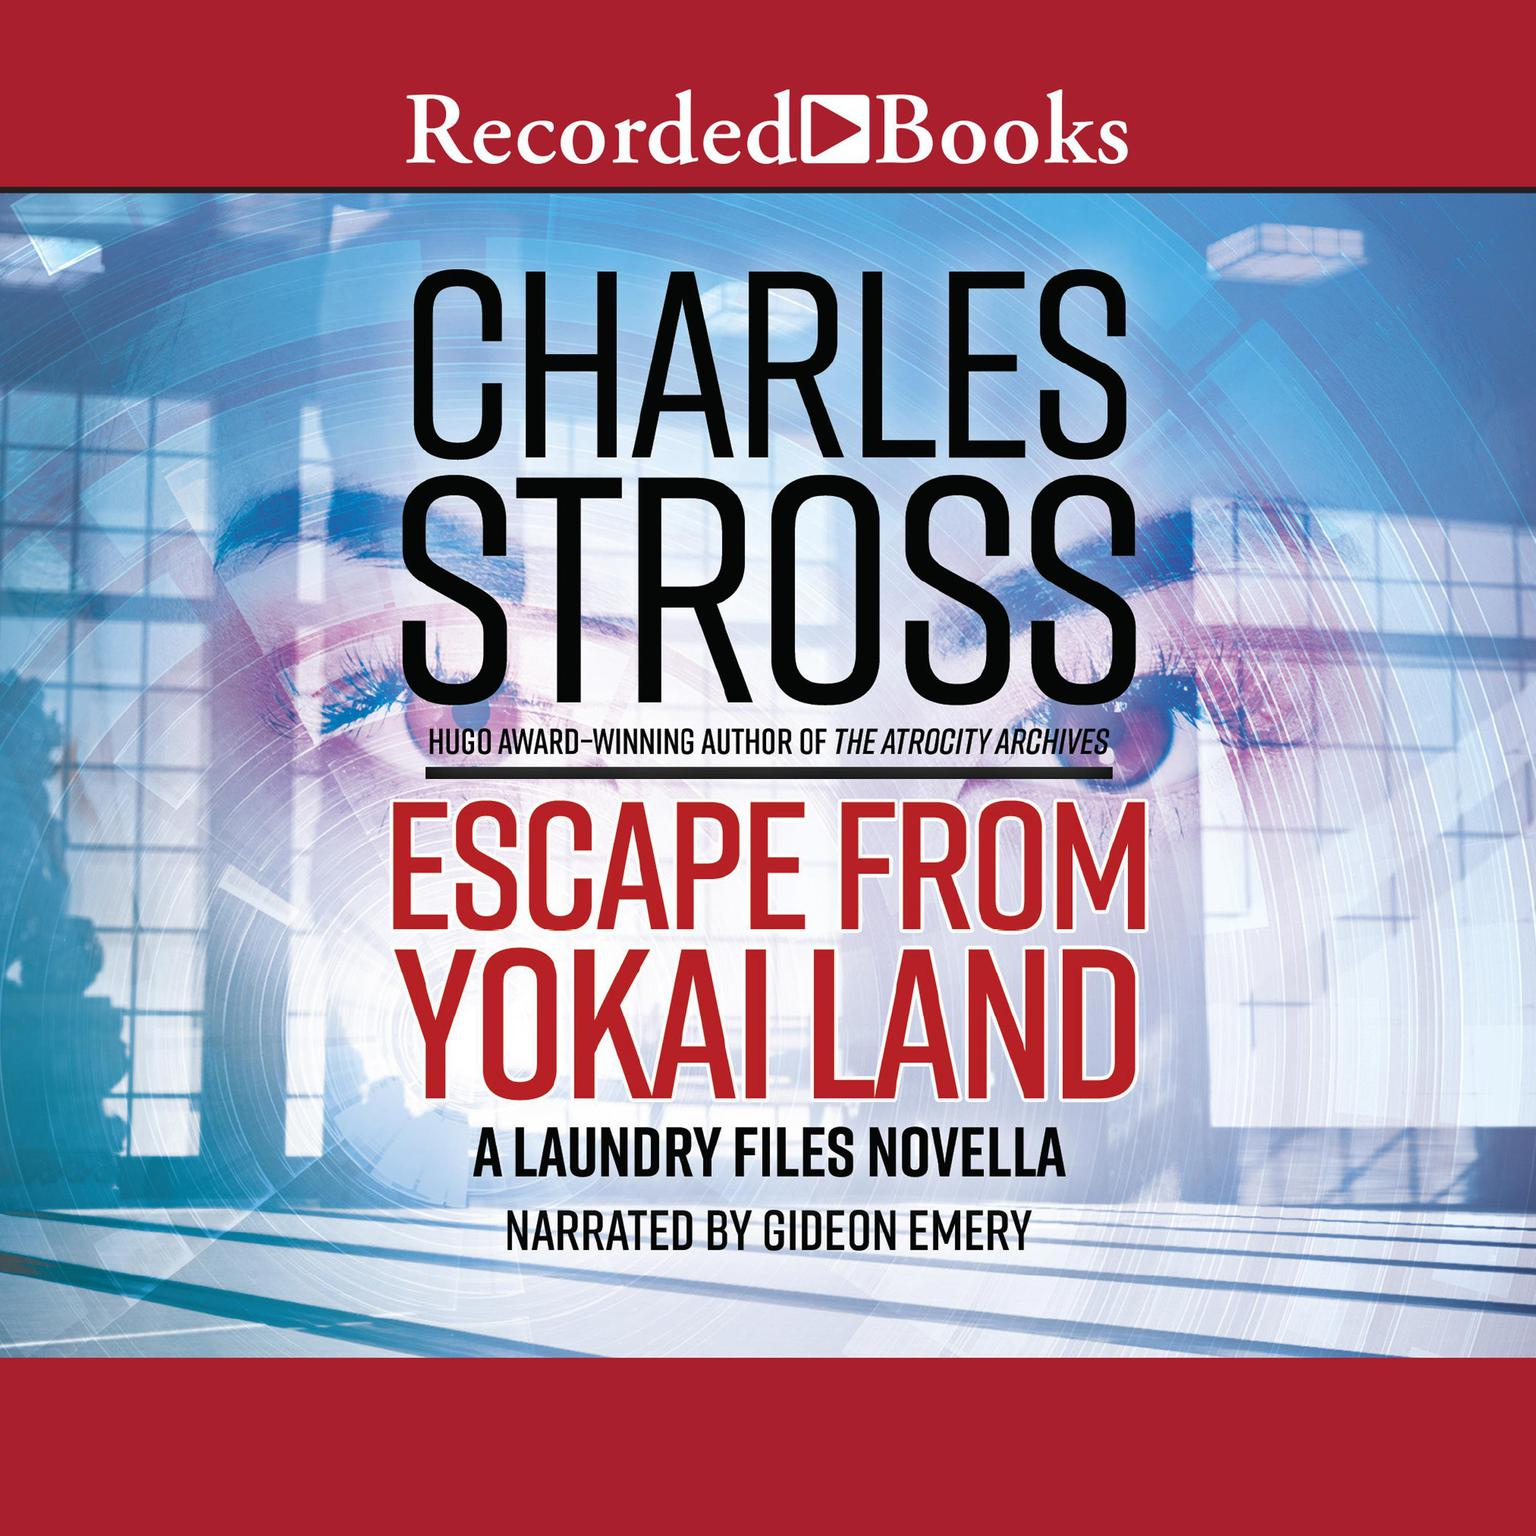 Escape From Yokai Land: A Laundry Files Novella Audiobook, by Charles Stross